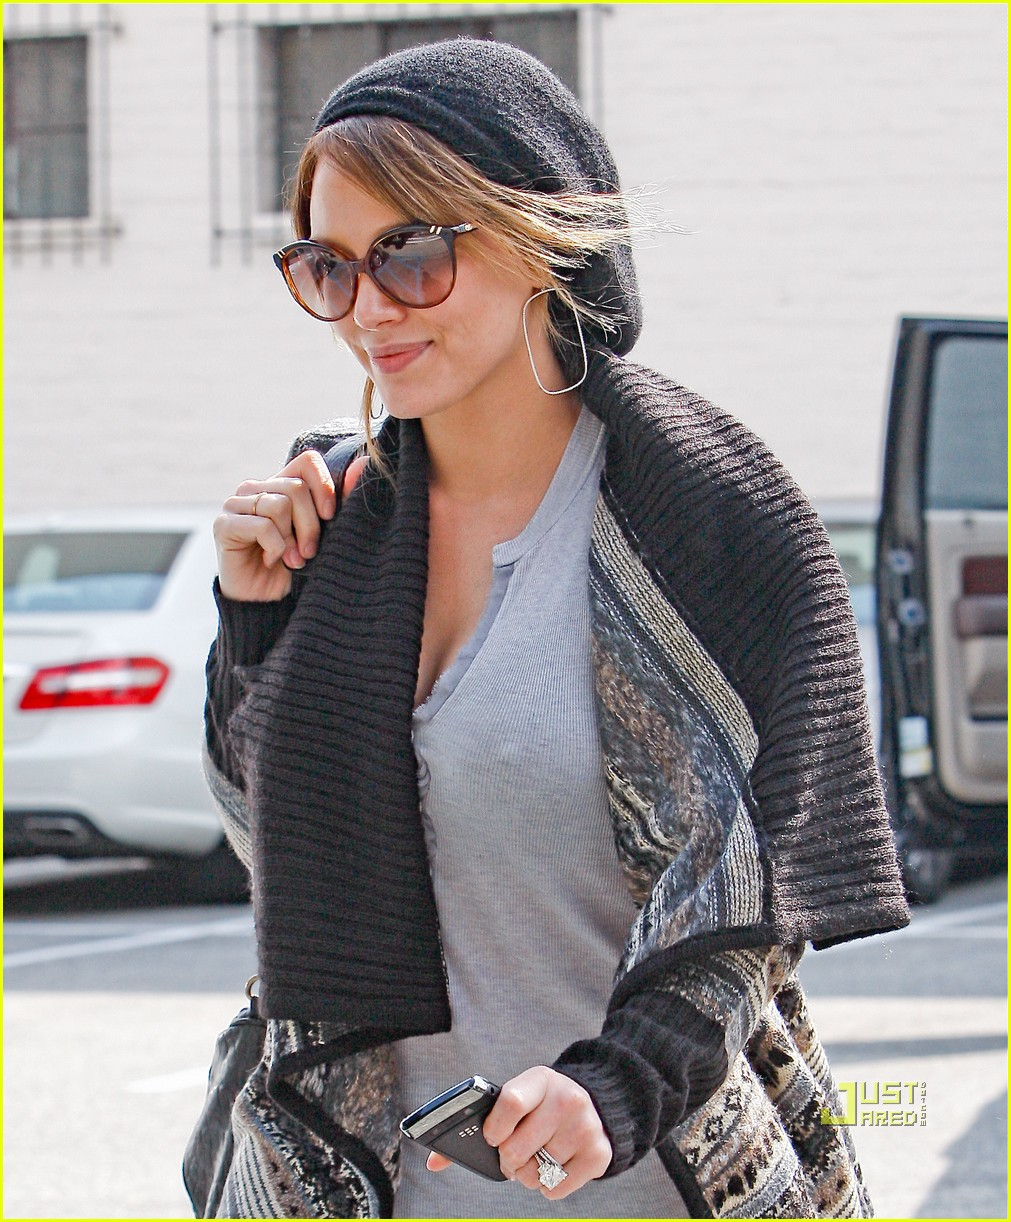 Hilary Duff Helps Nick Zano Shop For Engagement Ring?